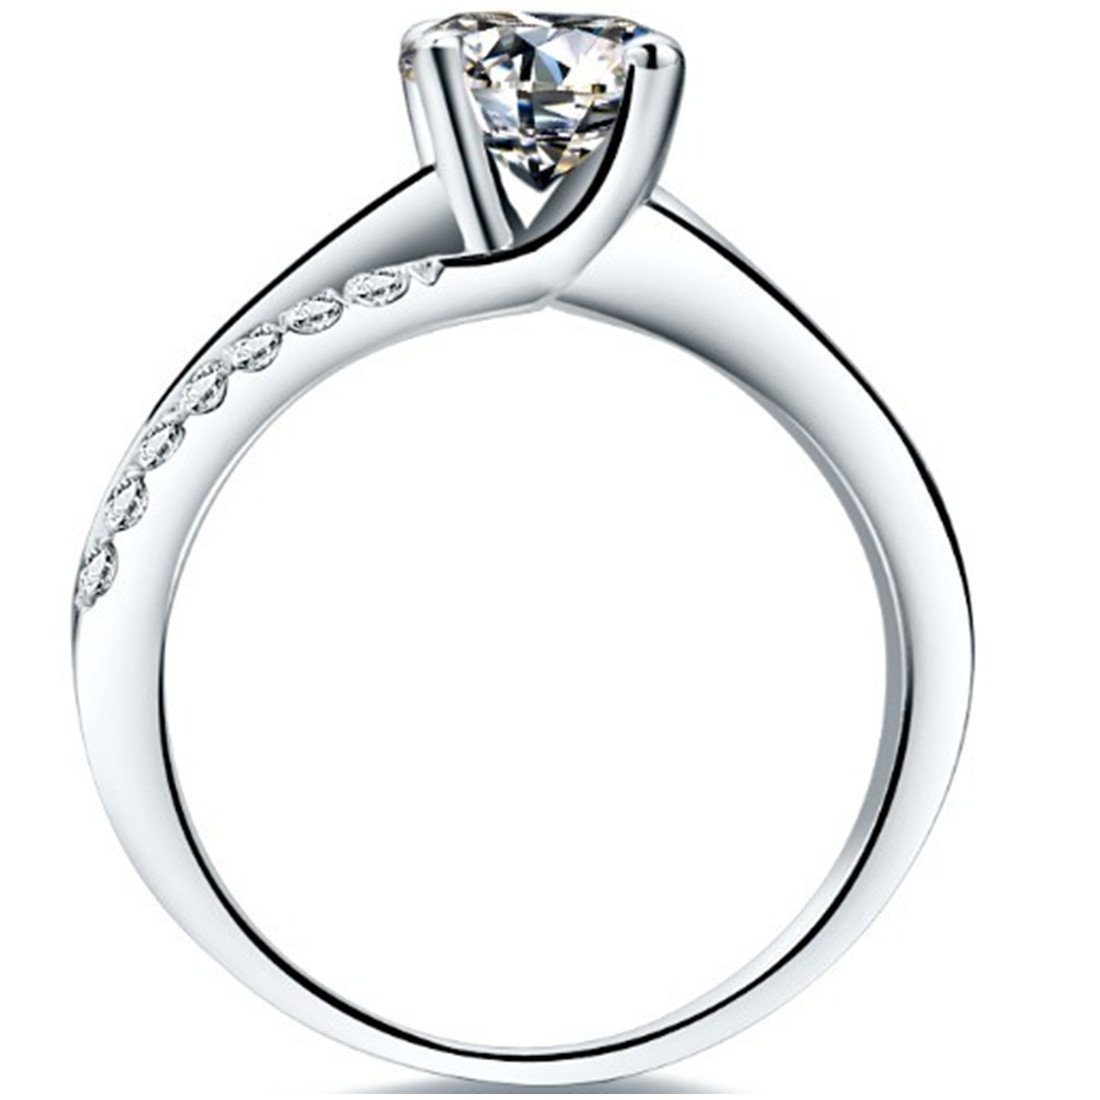 Superb 1CT NSCD Simulated Diamond Ring 4 Prongs Setting Engagement Ring for Women Sterling Silver by THREE MAN (Image #3)